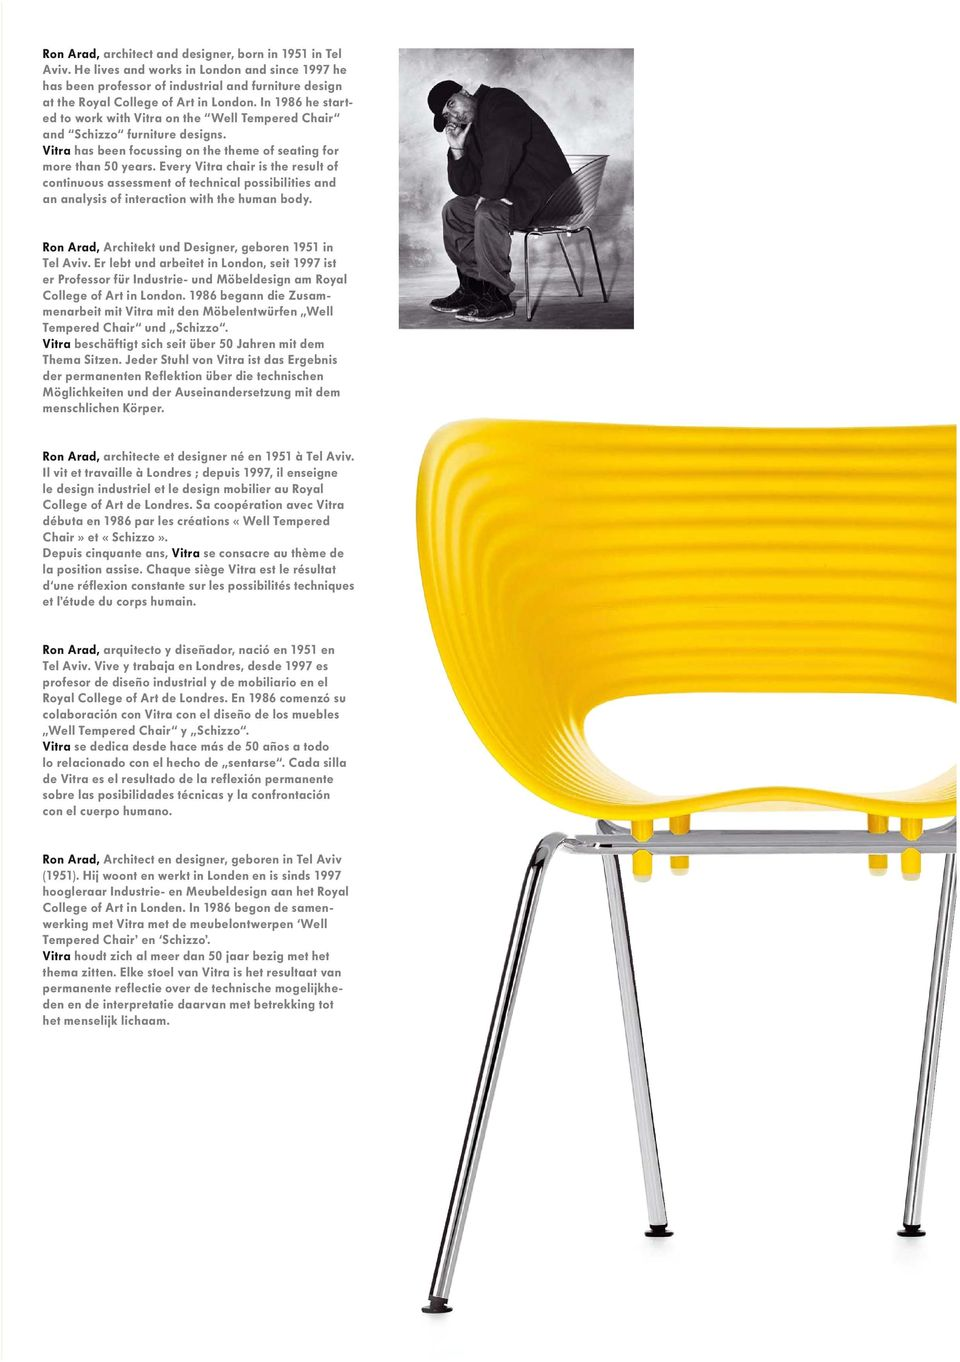 Every Vitra chair is the result of continuous assessment of technical possibilities and an analysis of interaction with the human body. Ron Arad, Architekt und Designer, geboren 1951 in Tel Aviv.